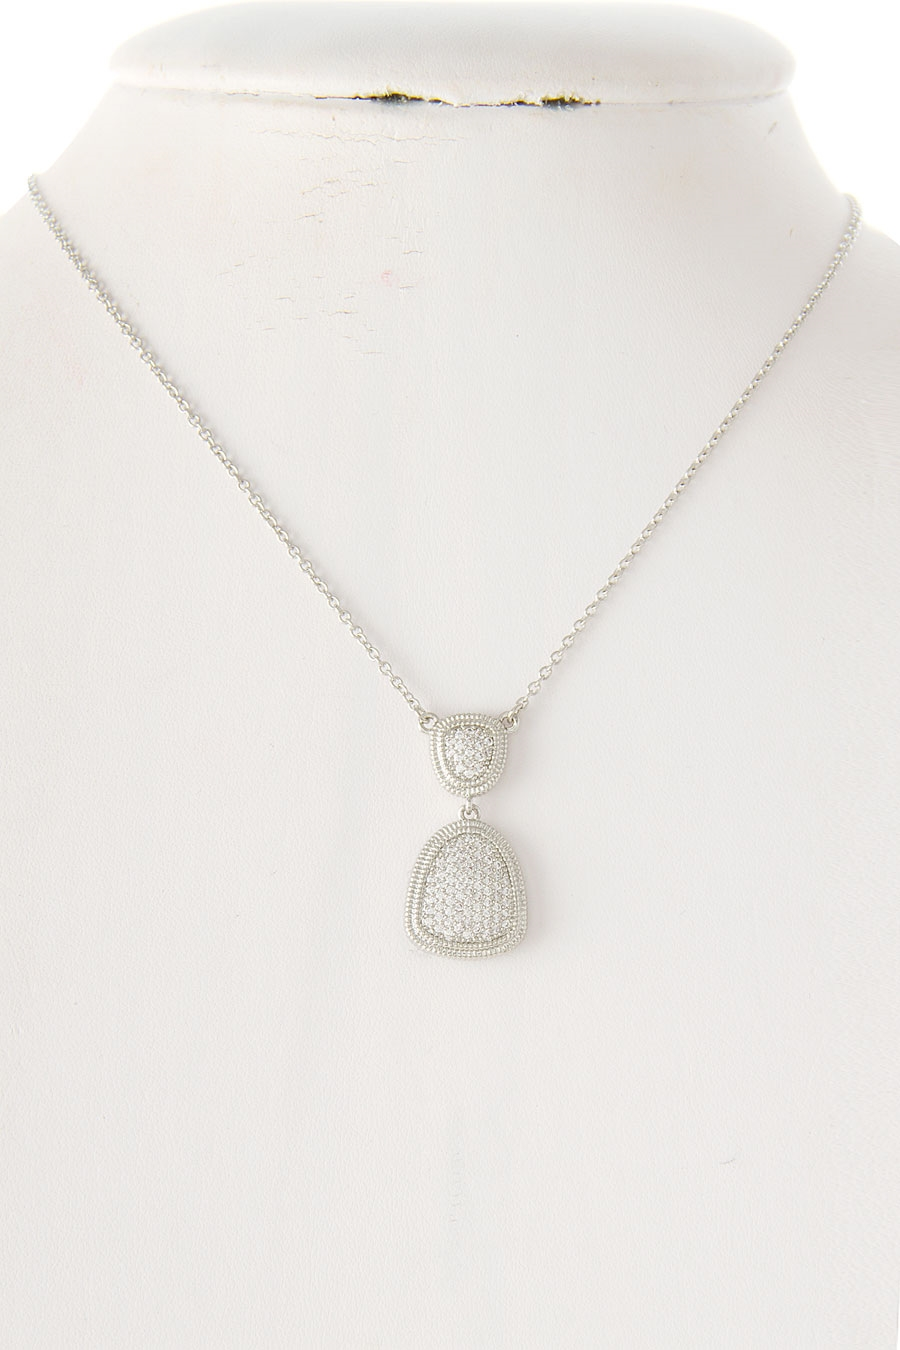 CRYSTAL PAVE DROP NECKLACE - orangeshine.com